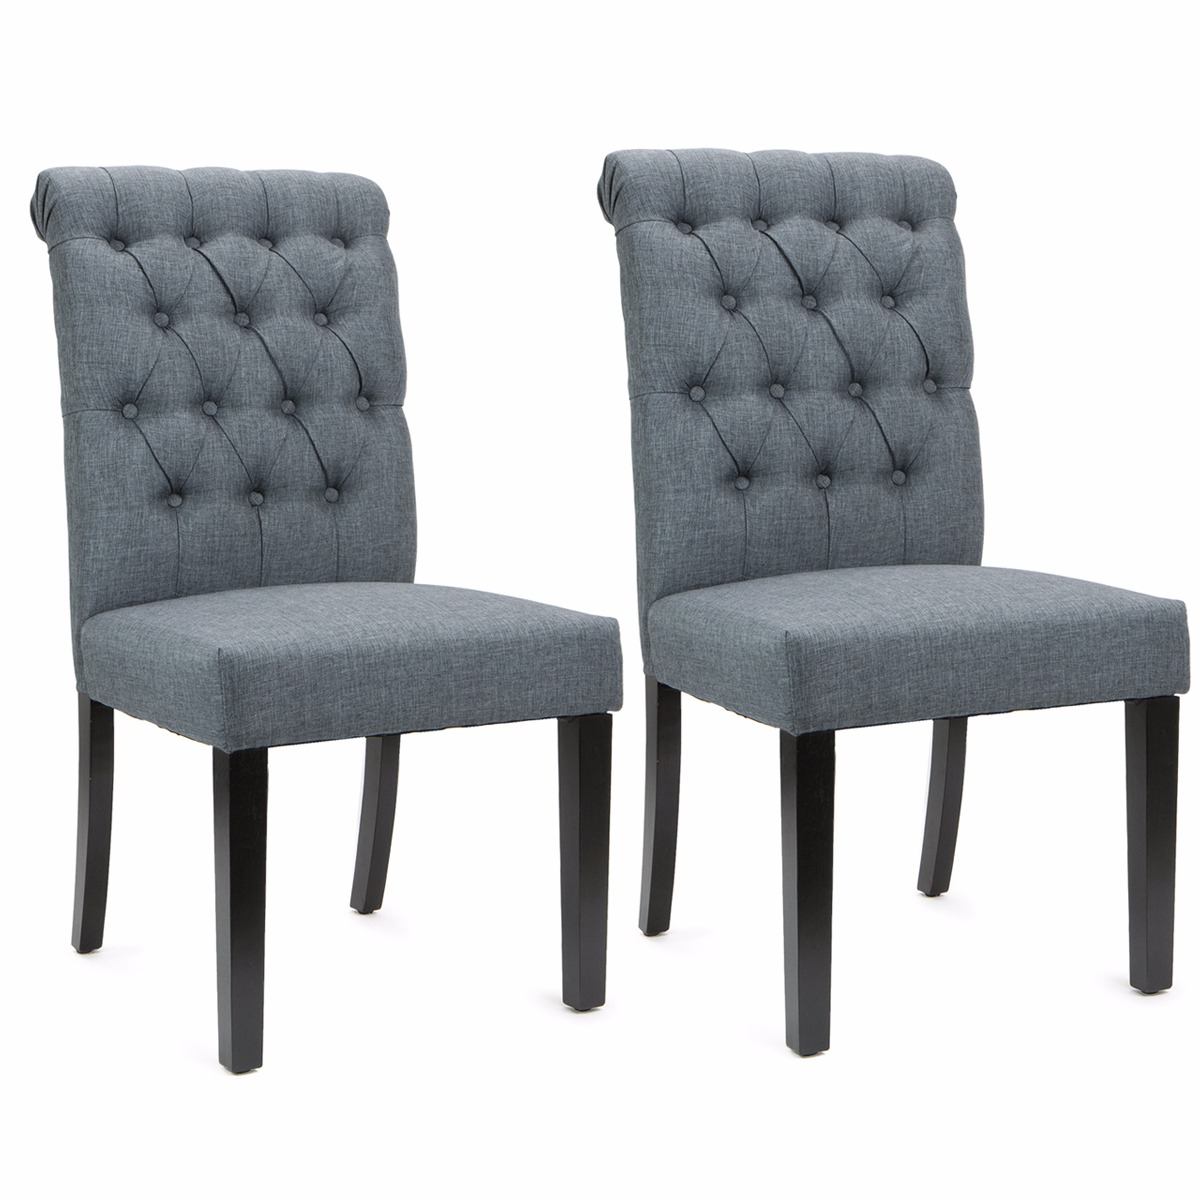 Sef of 2 Elegant Tufted Padded Victorian Dining Chair Set, Grey